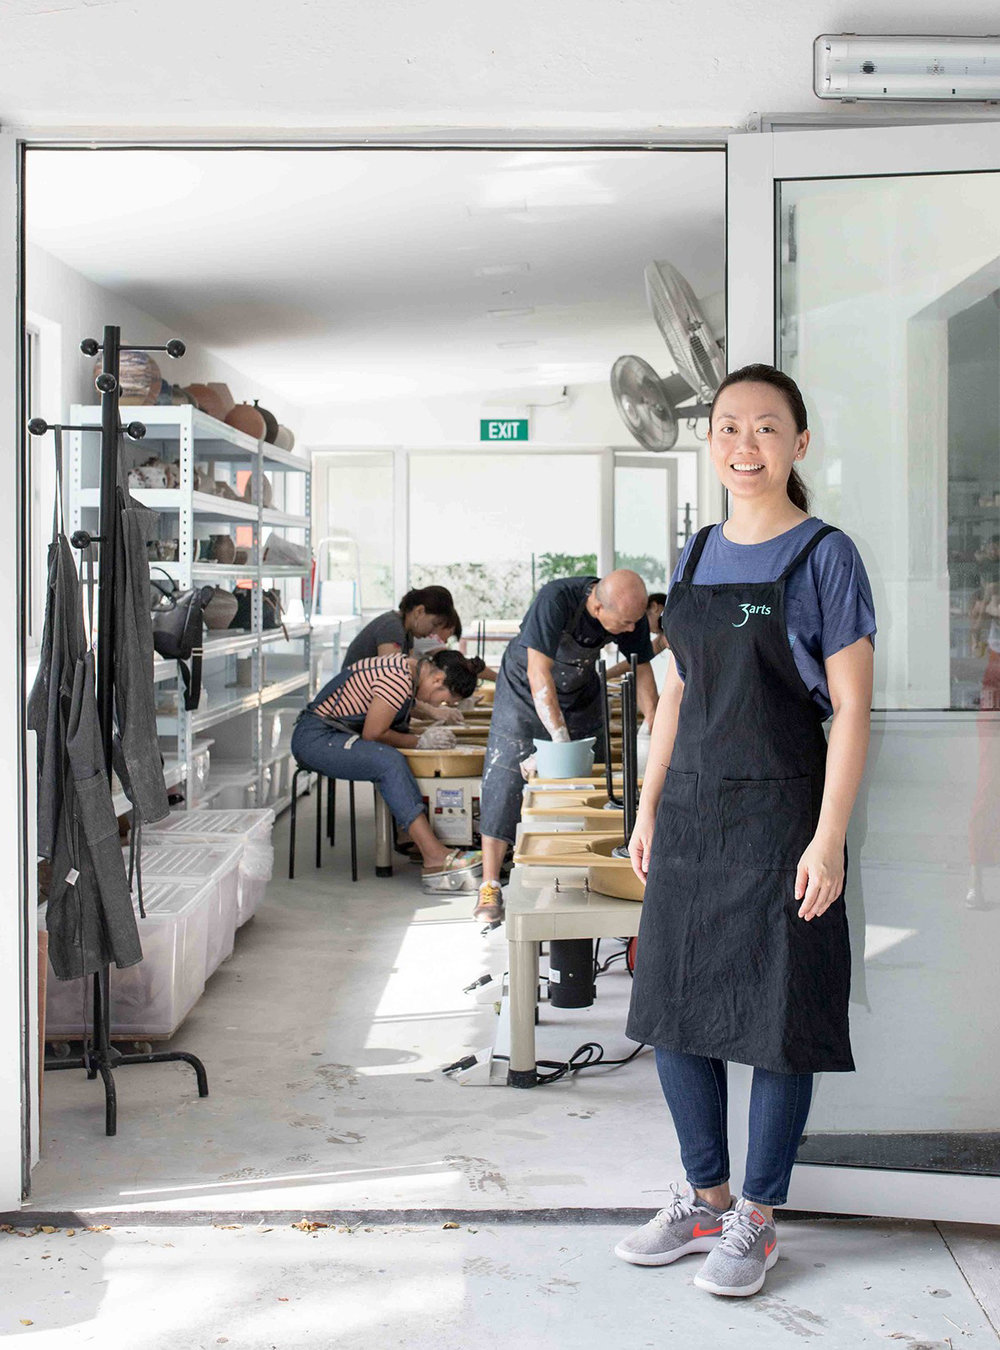 """How did you get started with pottery? - """"Center Pottery is the fruit of my work experiences and my passion.I started pottery at the University of Pennsylvania as part of my Japanese Studies undergraduate programme. I fell in love with pottery because I was able to use my hands to create something functional and utilitarian.As a former national sailor for Singapore, I enjoy fixing things with my hands, so I gravitated to this artform.I often hear people describe pottery as therapeutic so combining the two (medicine and pottery) came as a lightbulb moment for me. Pottery is a laborious process but I believe the benefits are worth the effort!"""""""